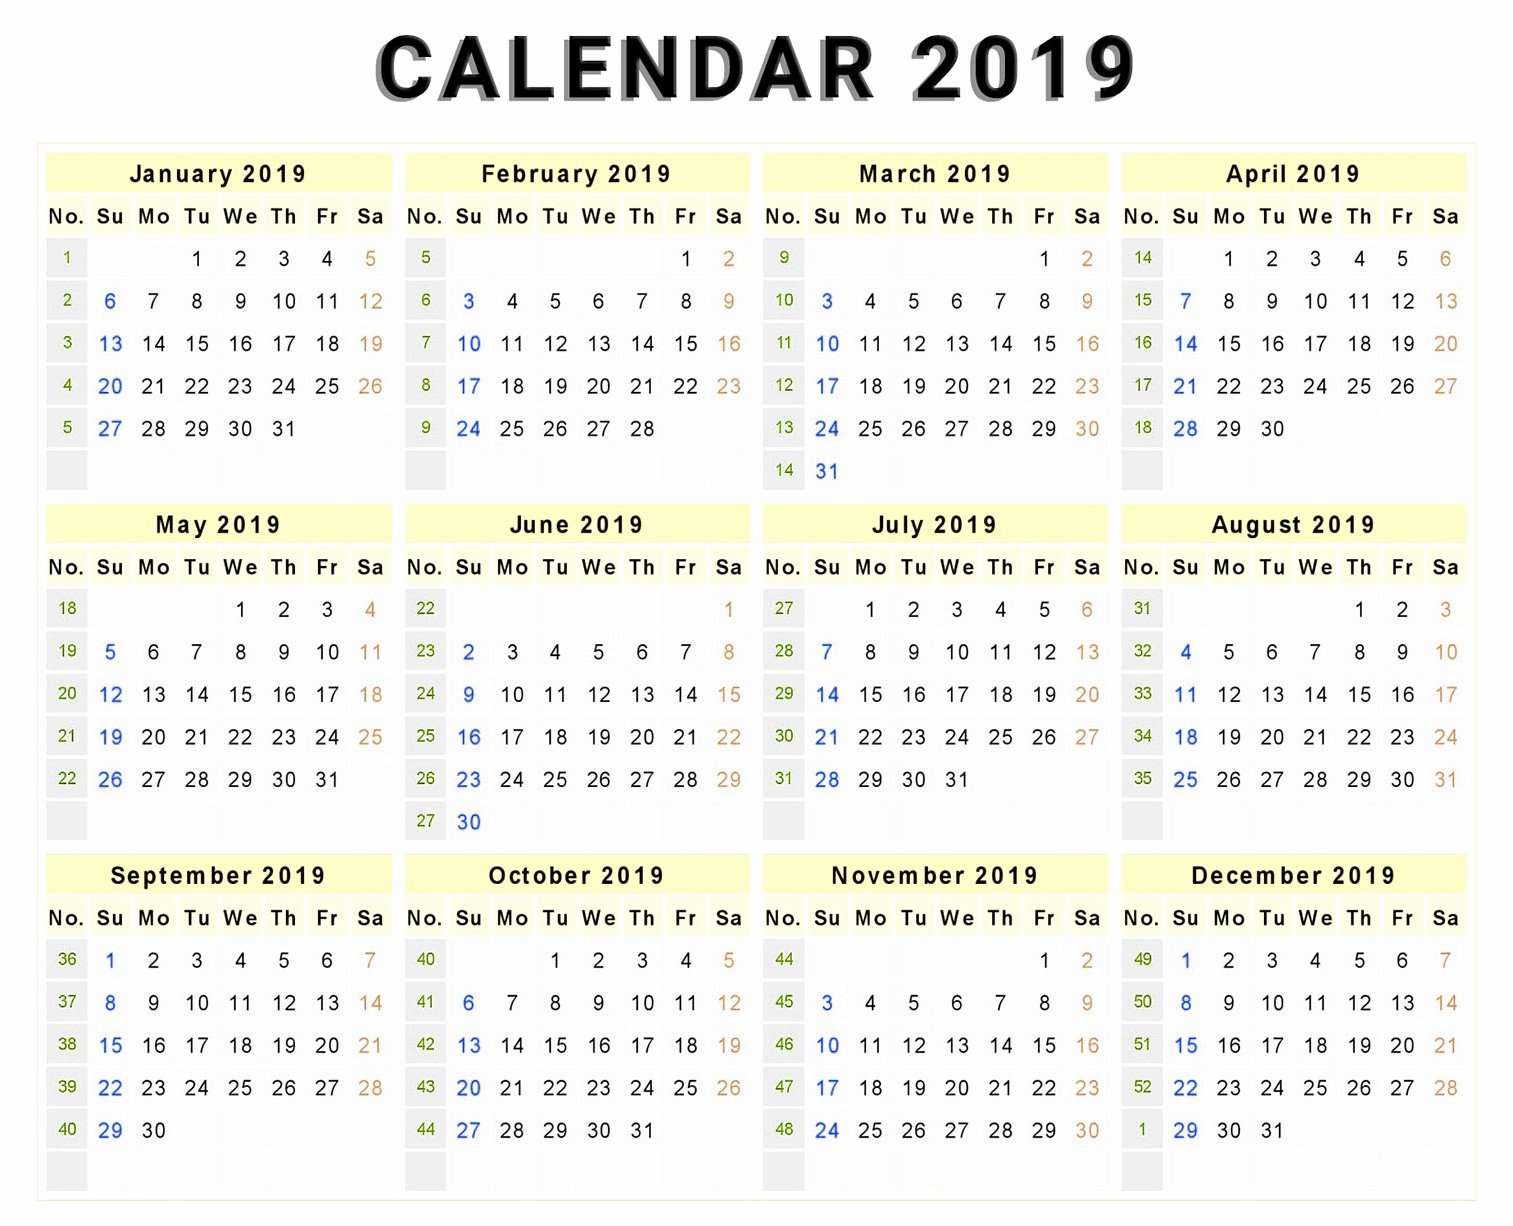 Microsoft Calendar Templates 2019 Unique 2019 Calendar Year at A Glance Printable